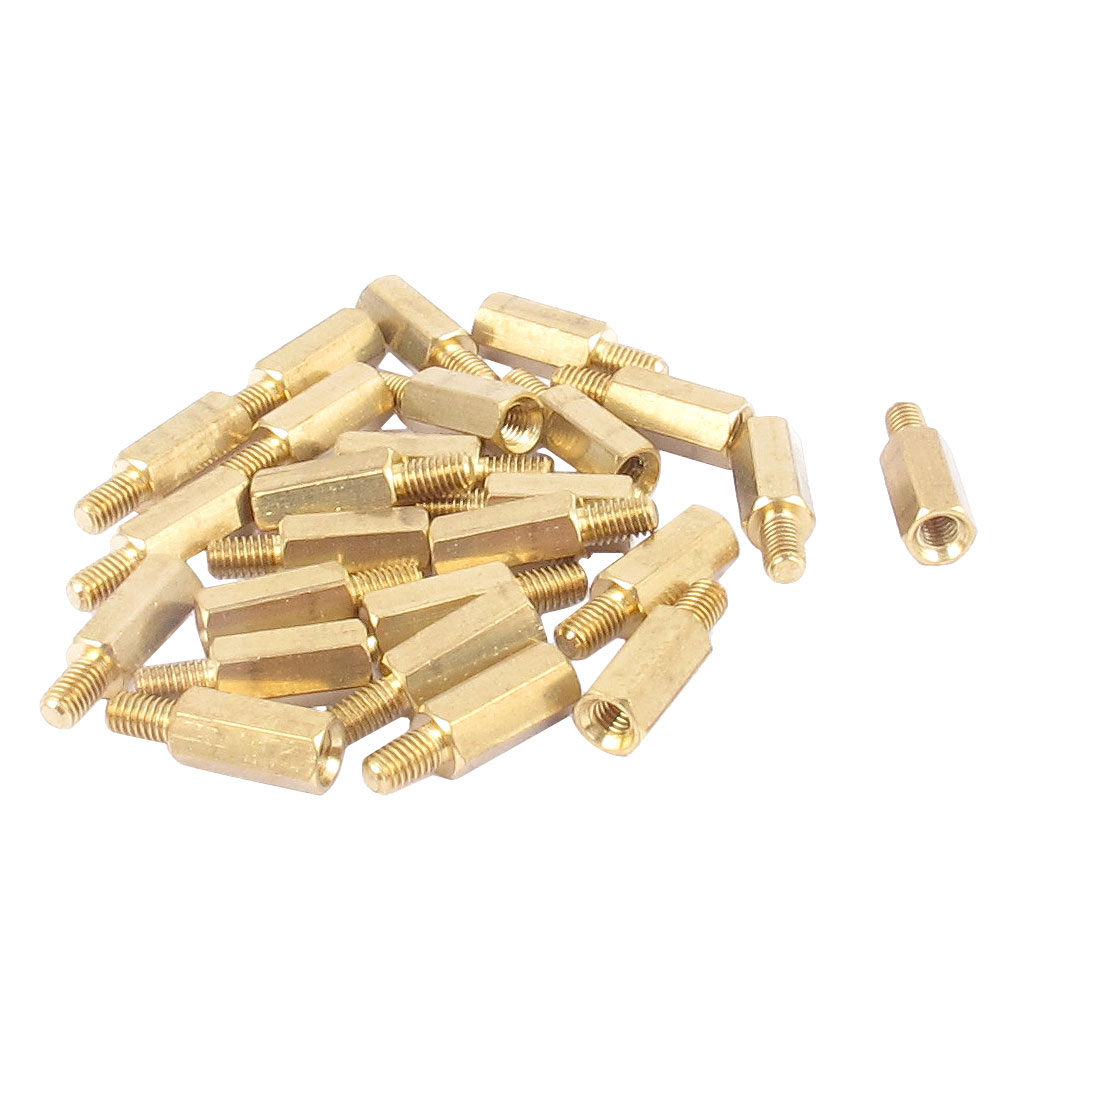 25 Pcs PC PCB Motherboard Brass Standoff Hexagonal Spacer M3 10+5mm